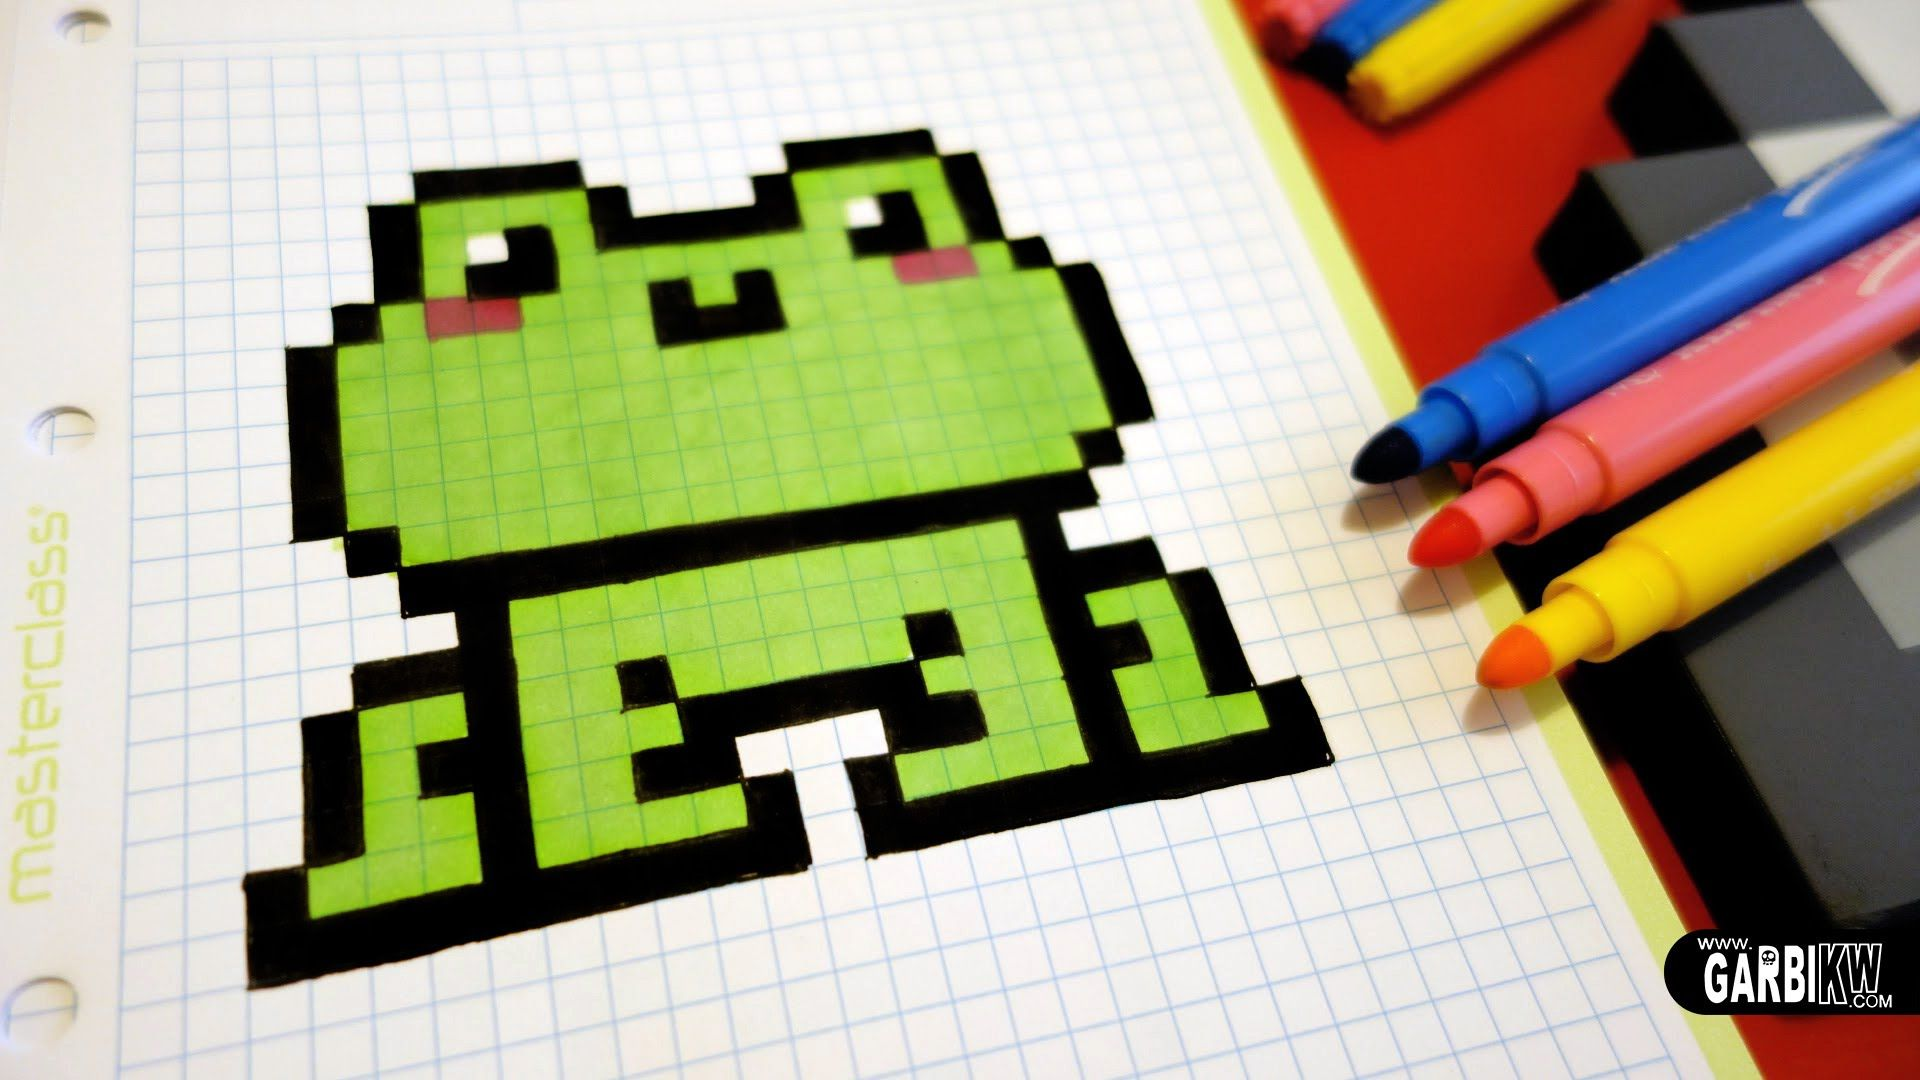 1000+ images about Hello Pixel Art by Garbi KW on Pinterest